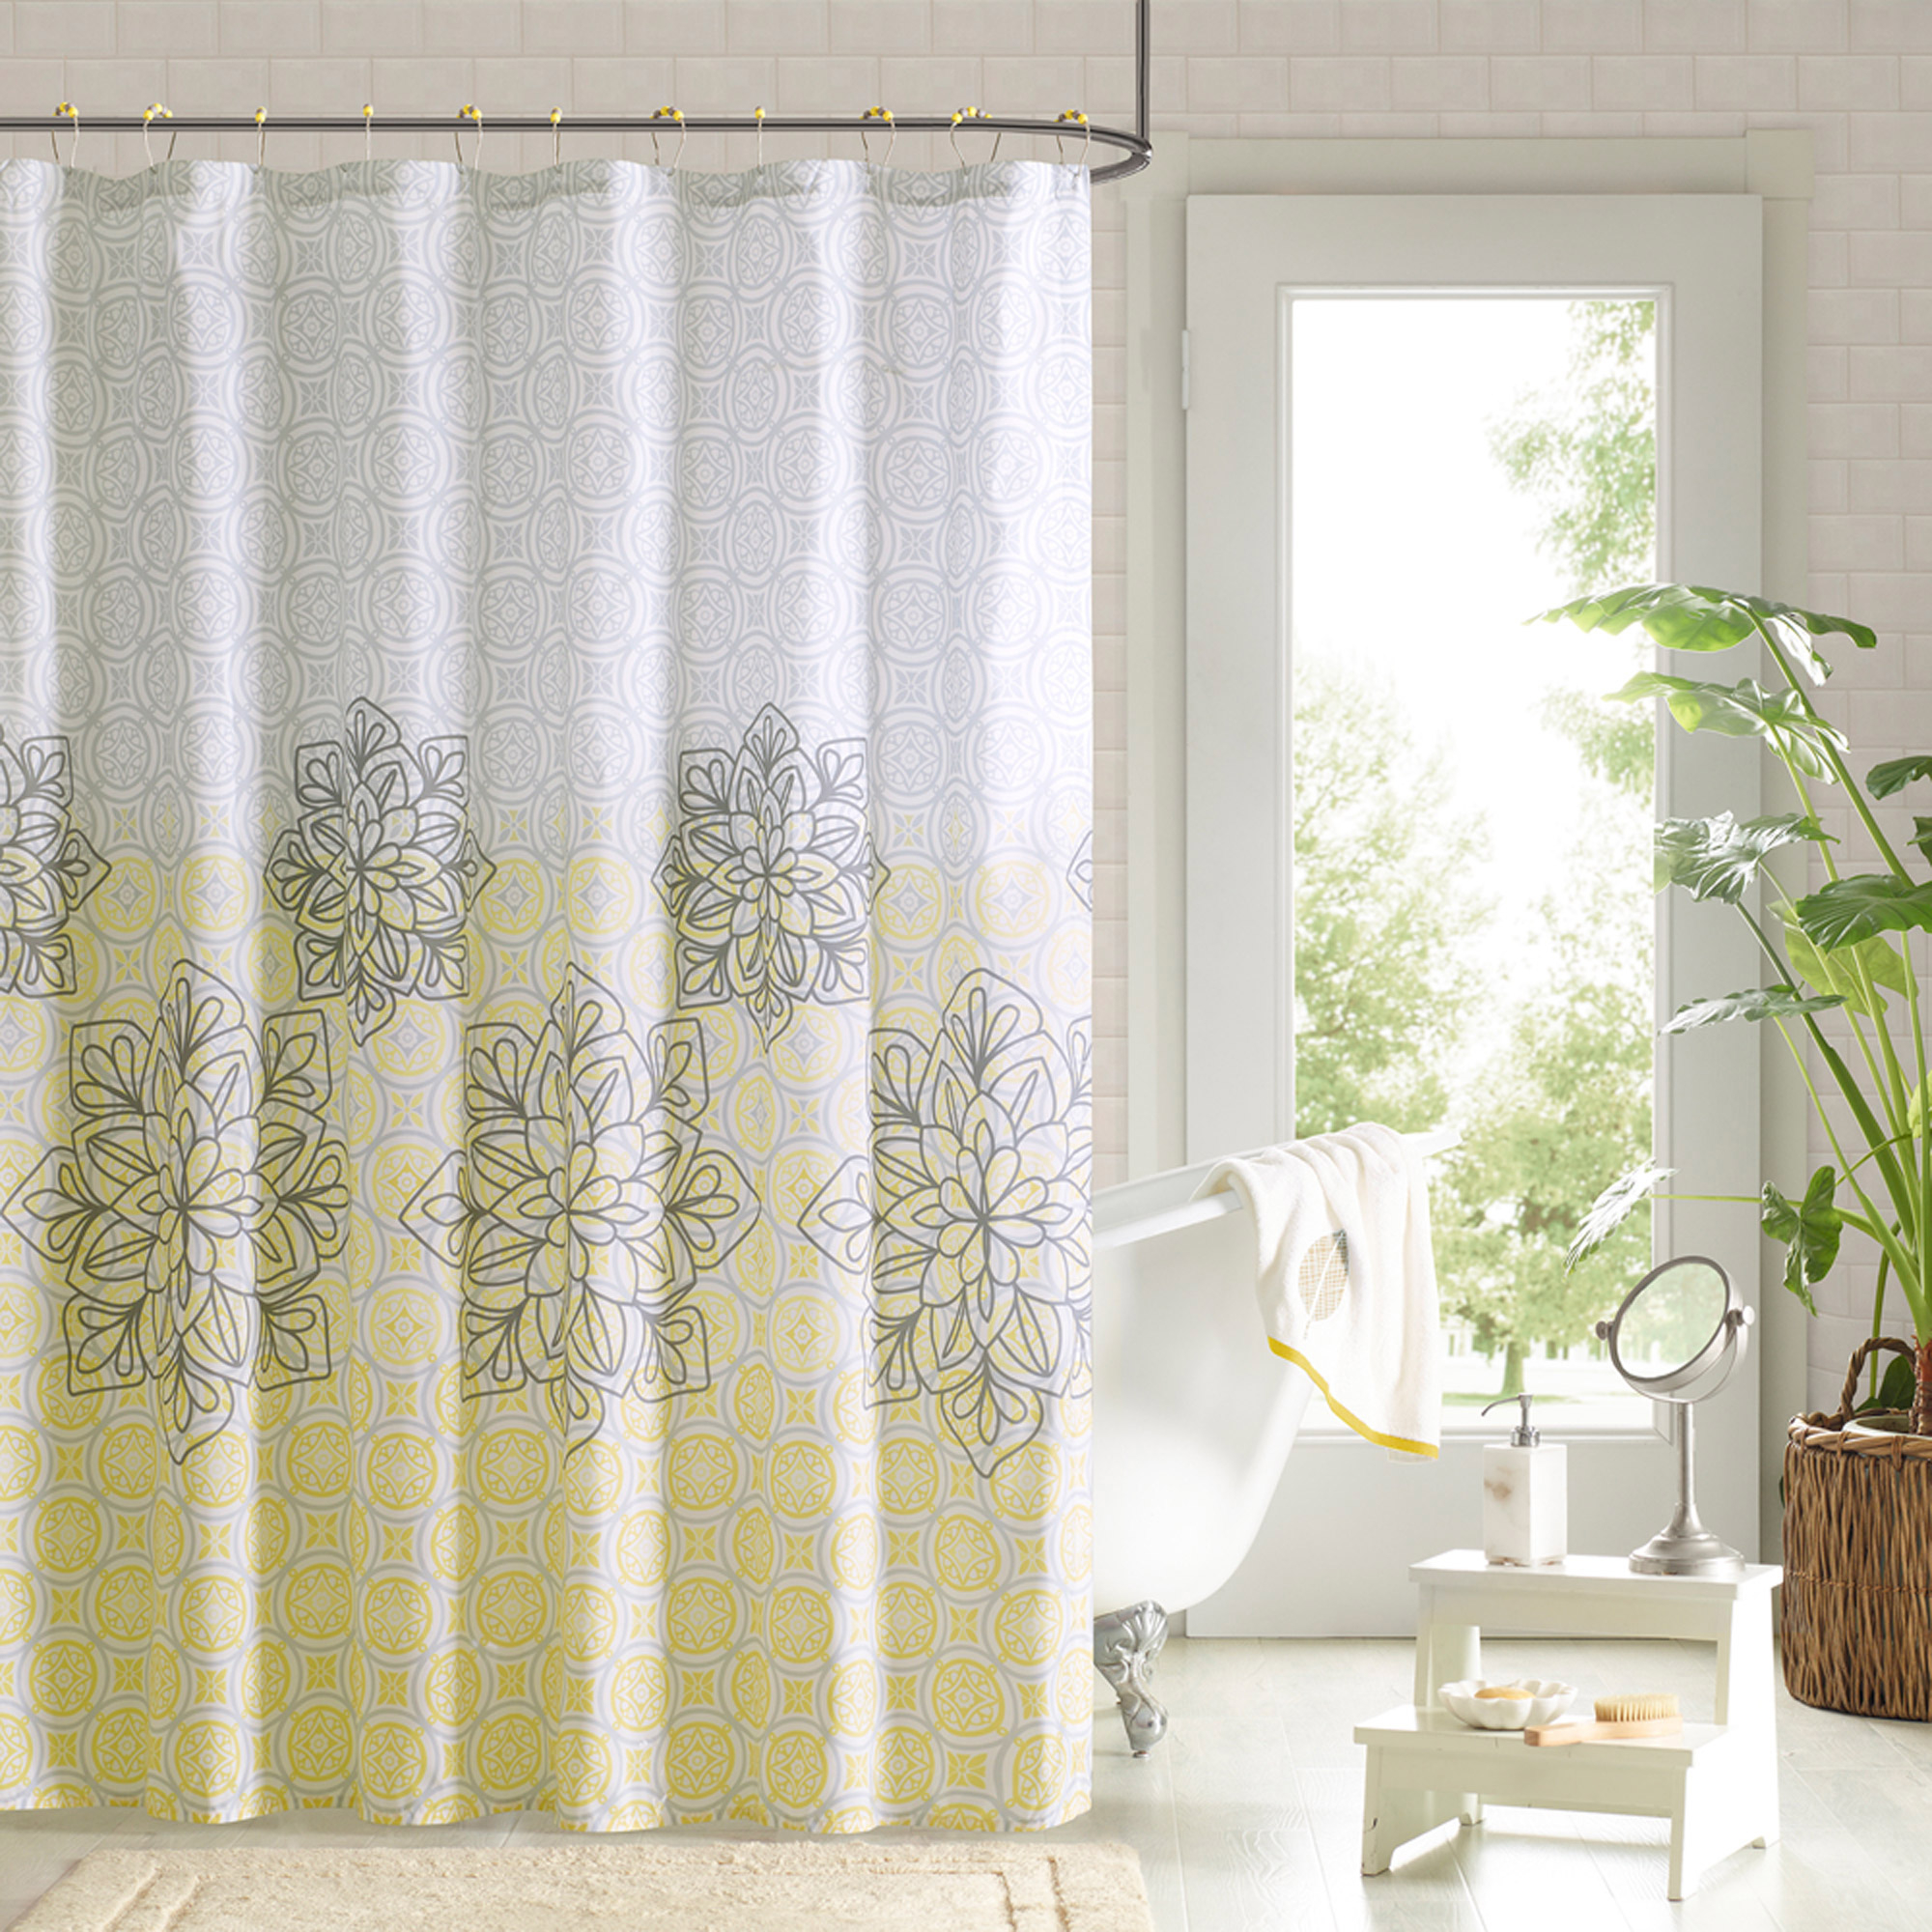 Yellow Patterned Shower Curtains